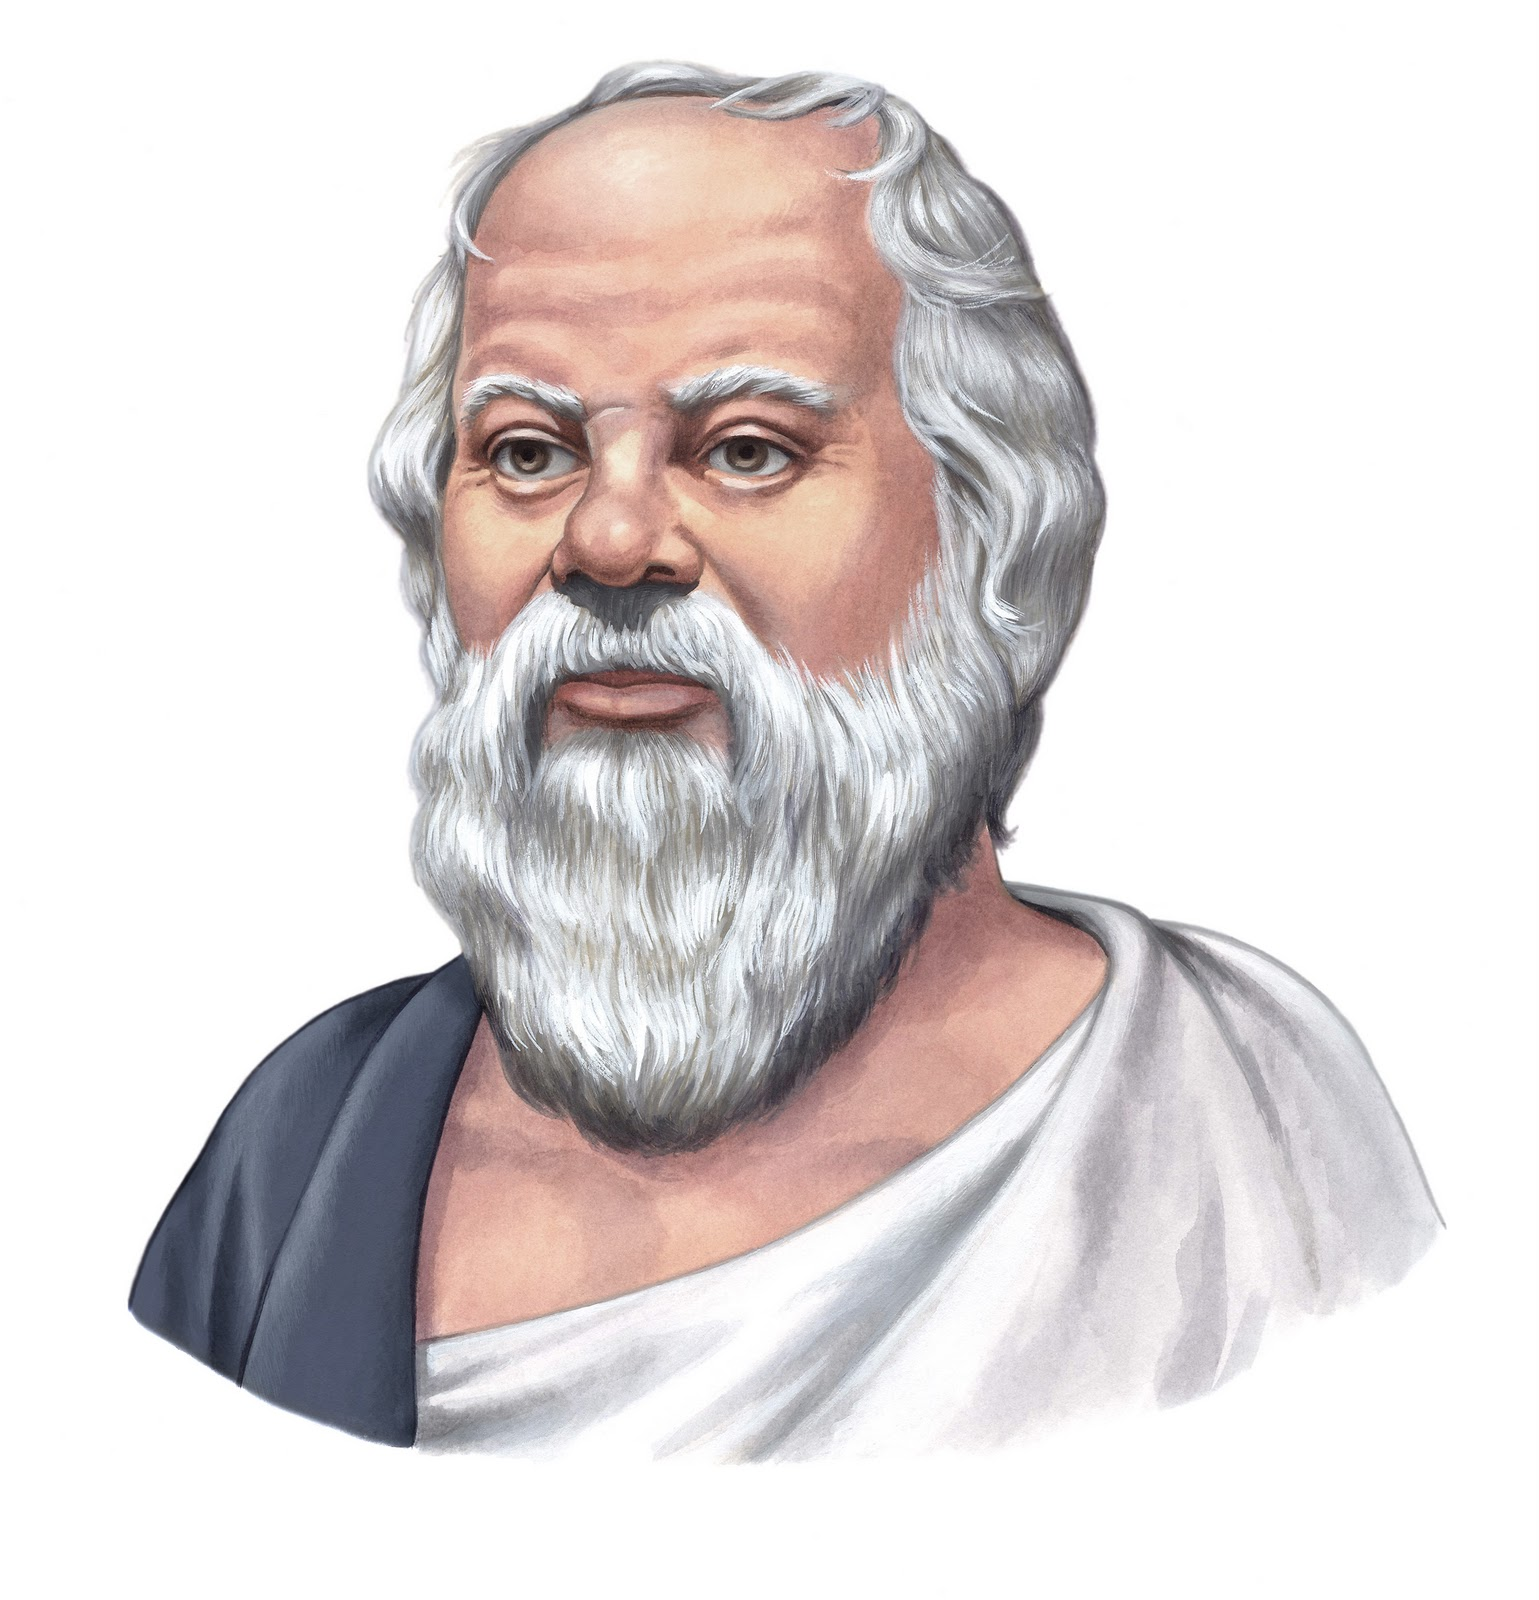 about the lives of the big three Ancient Greek philosophers, Socrates ...